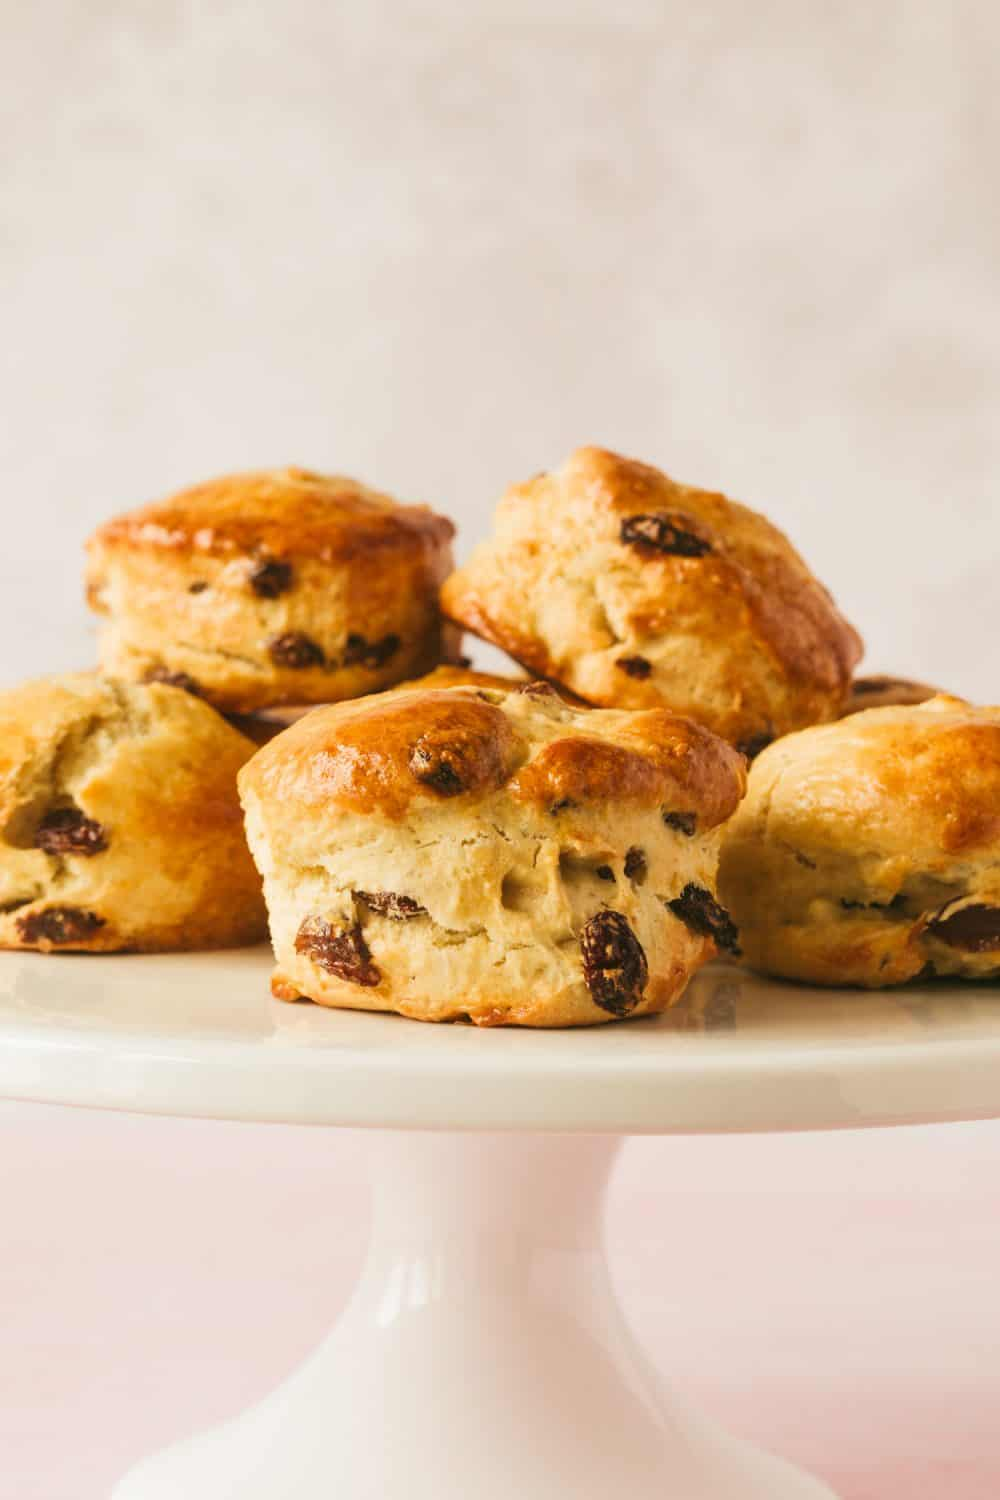 Side view of 6 fruit scones on a white cake stand. There are visible sultanas protruding from the scones and they are golden brown in colour.